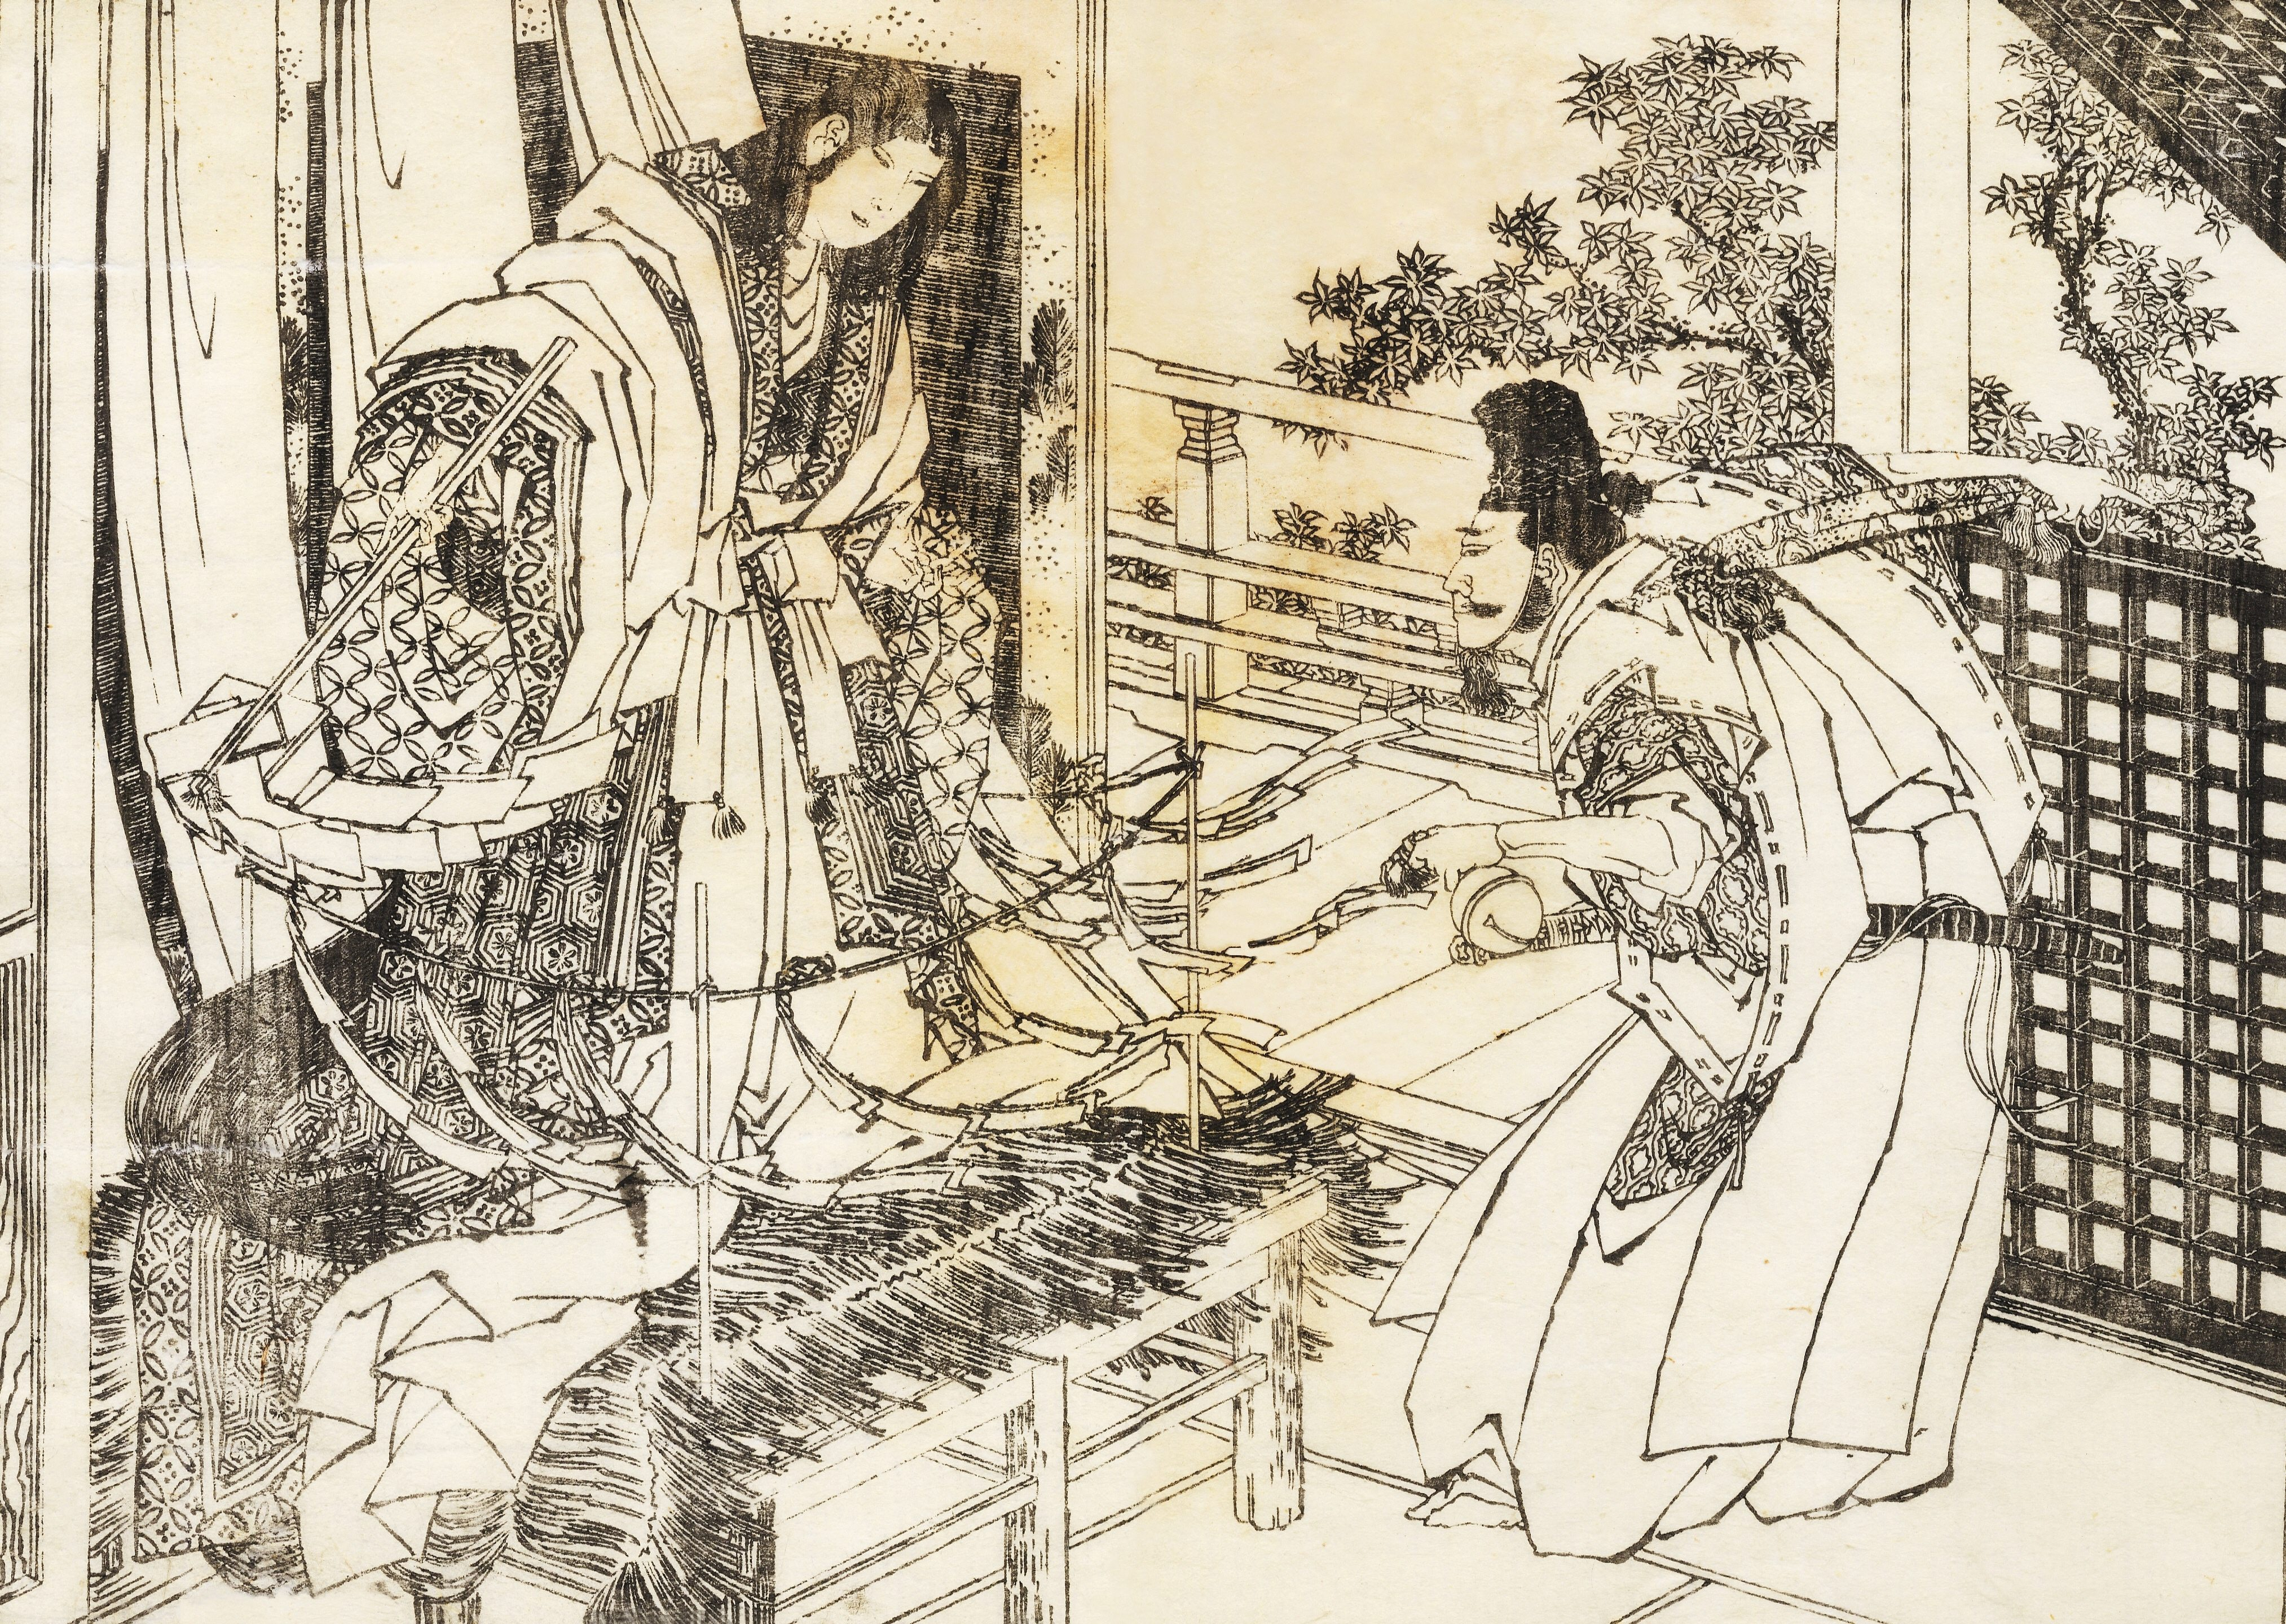 Shinto Shrine Drawing a Woman in Shinto Shrine Has a